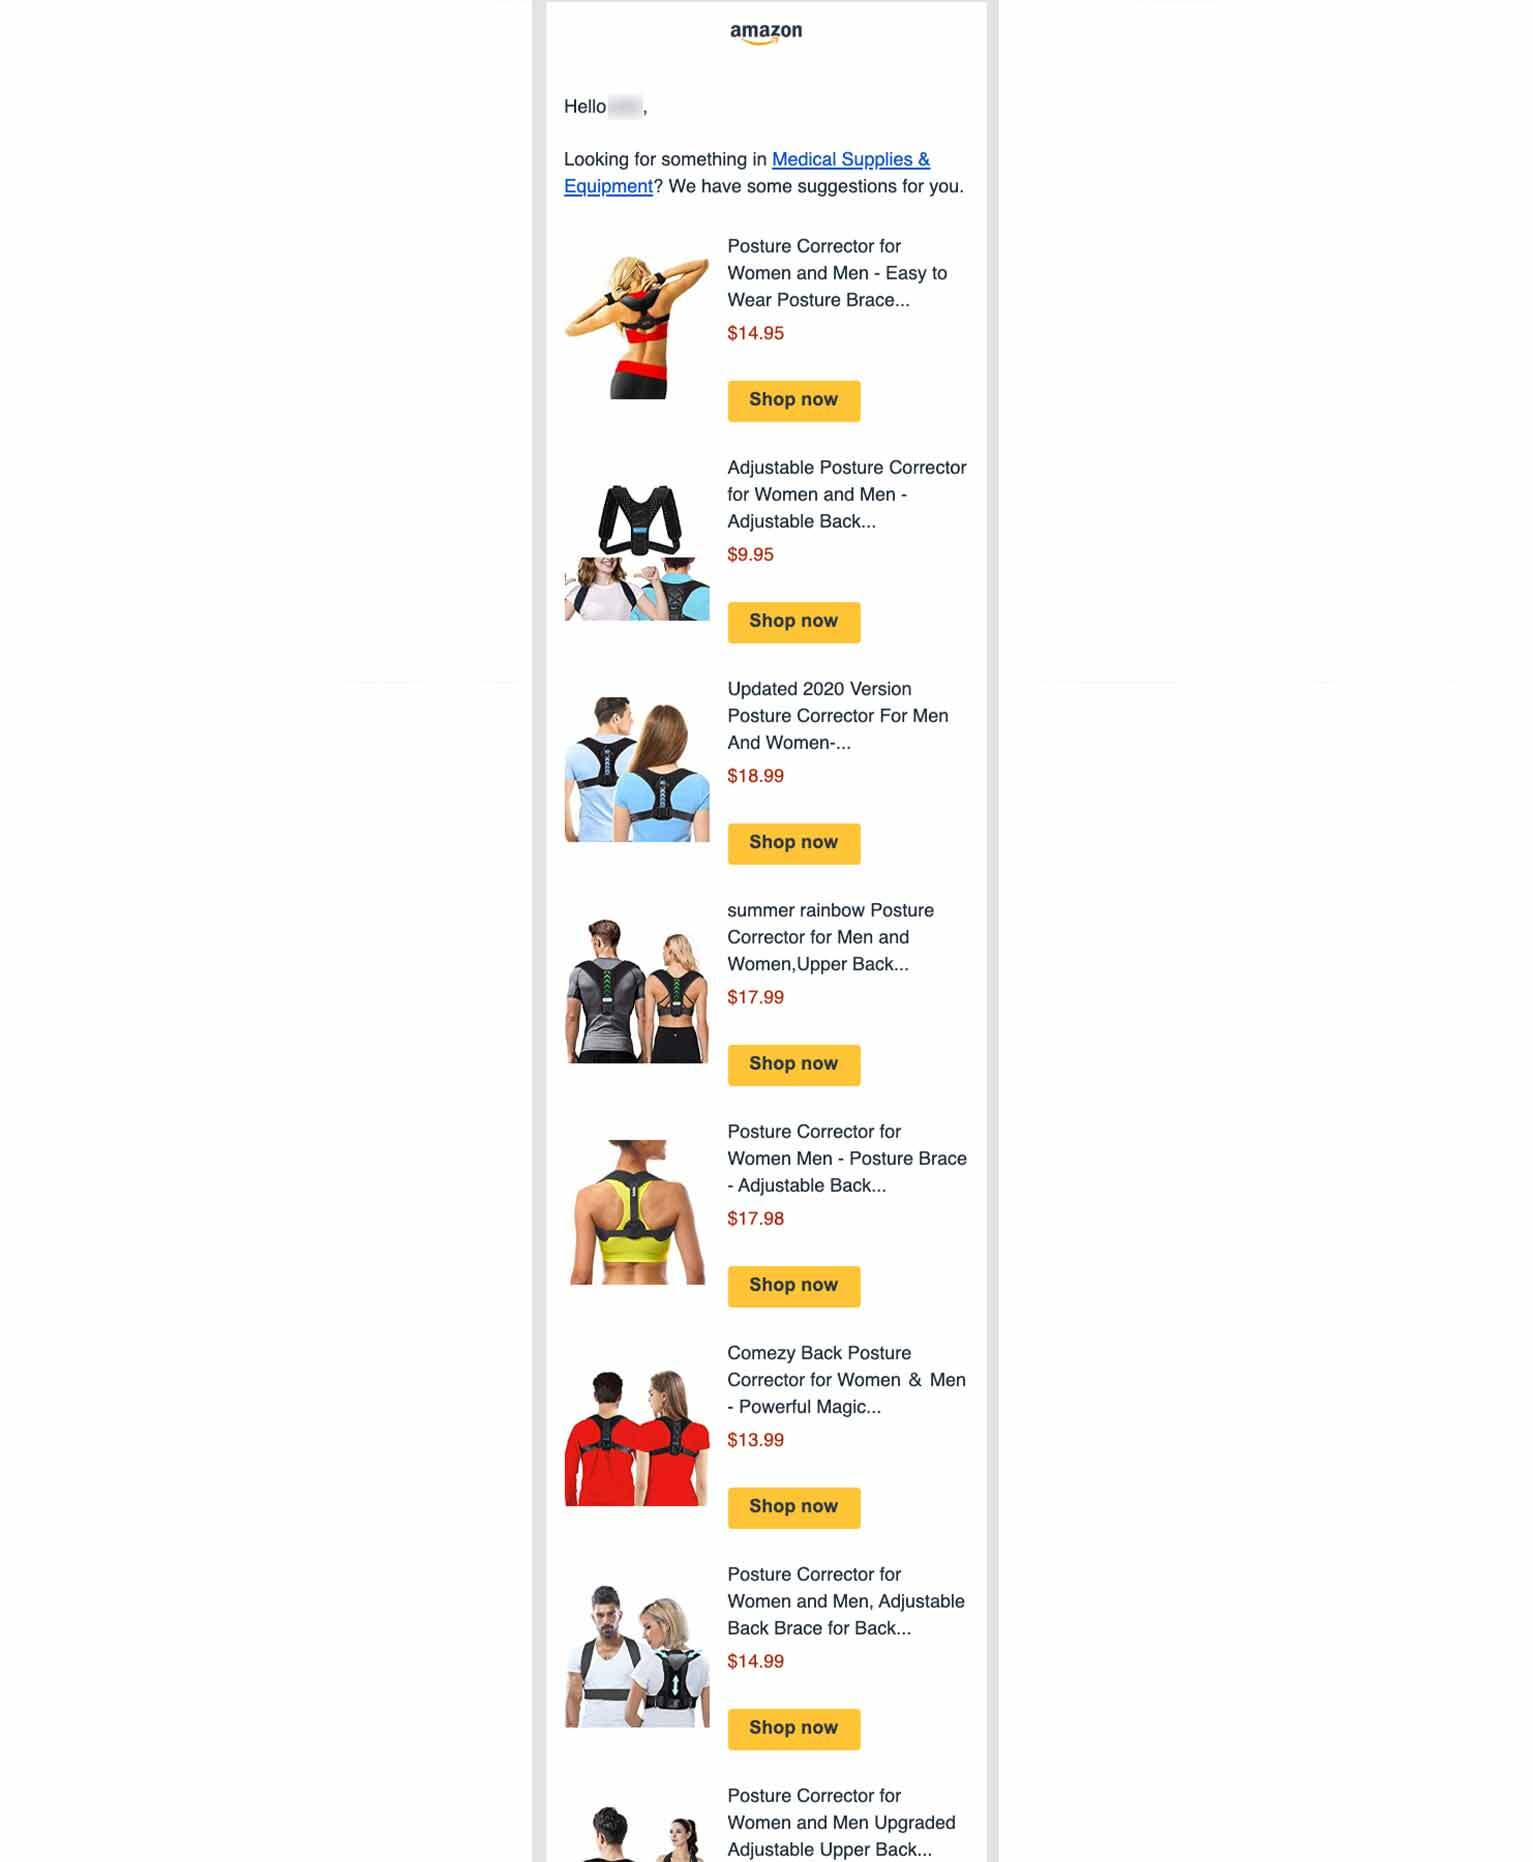 Amazon's third follow-up email in a purchase reminder sequence, showing images and pricing for various posture corrector braces.